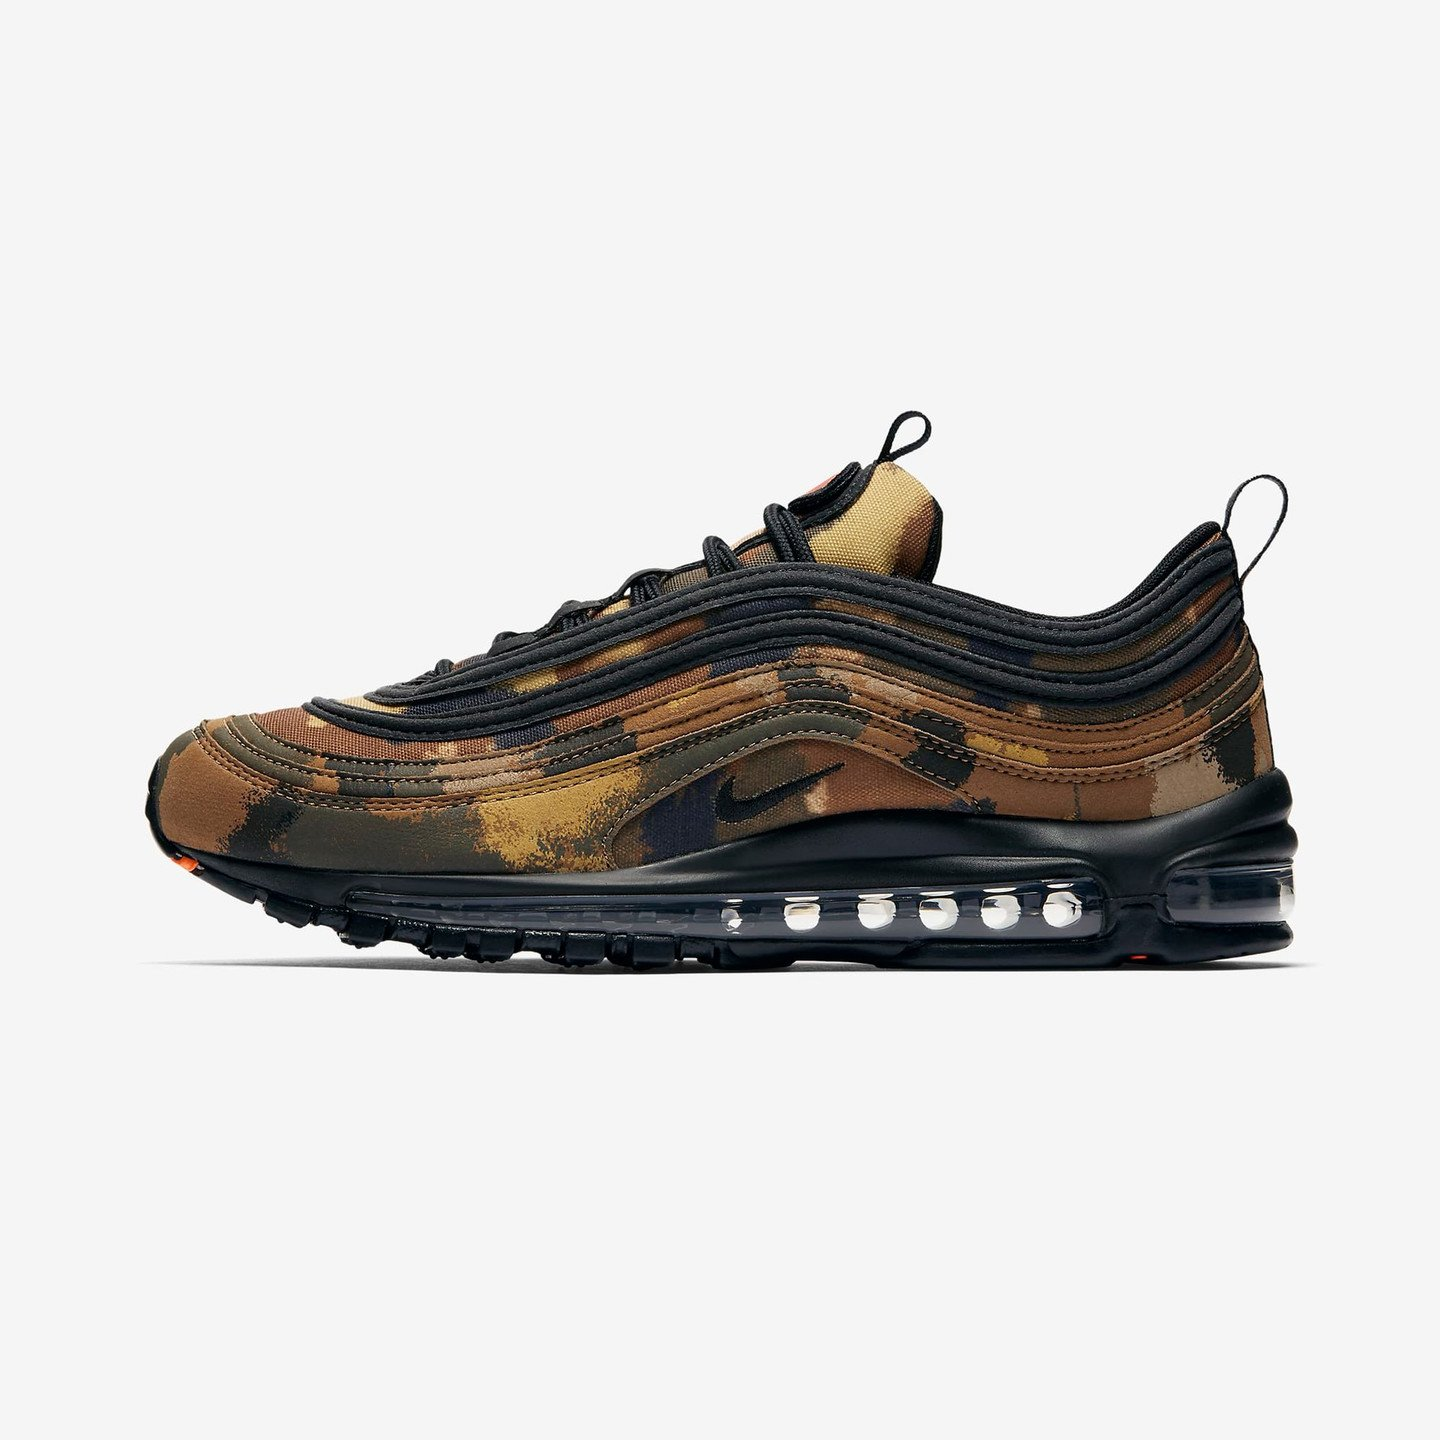 hot sales 0fb42 c474e ... closeout nike air max 97 premium italy camo ale brown black cargo khaki  c0095 f49f6